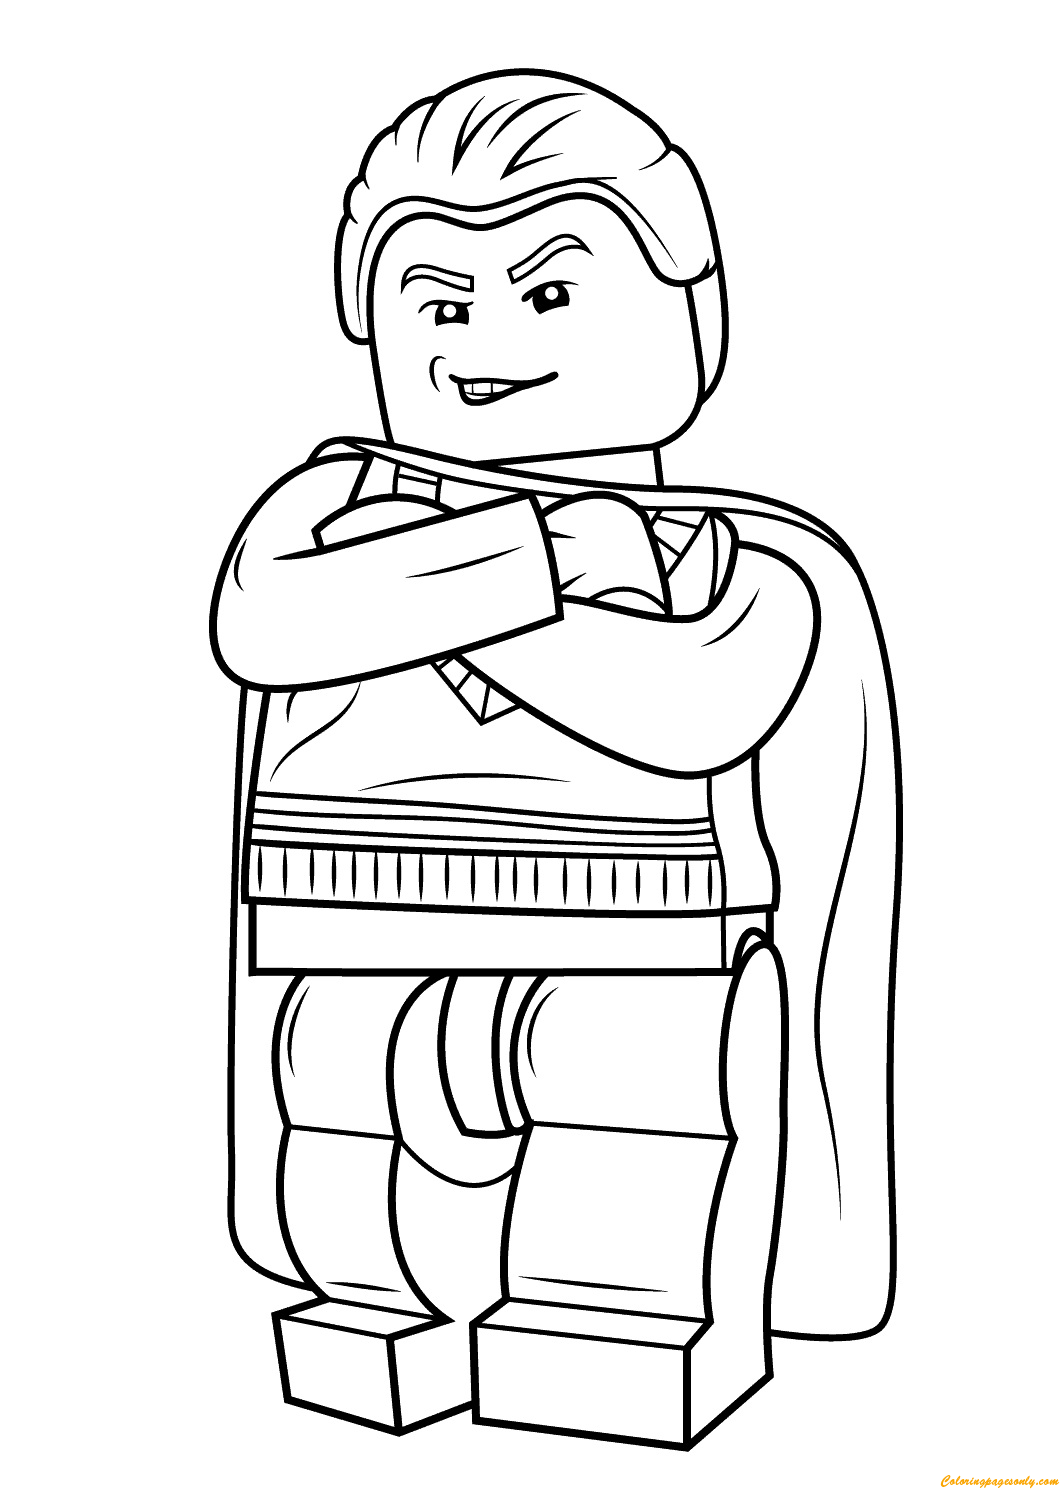 Coloring Pages Toys And Dolls Lego Lego Ninjago